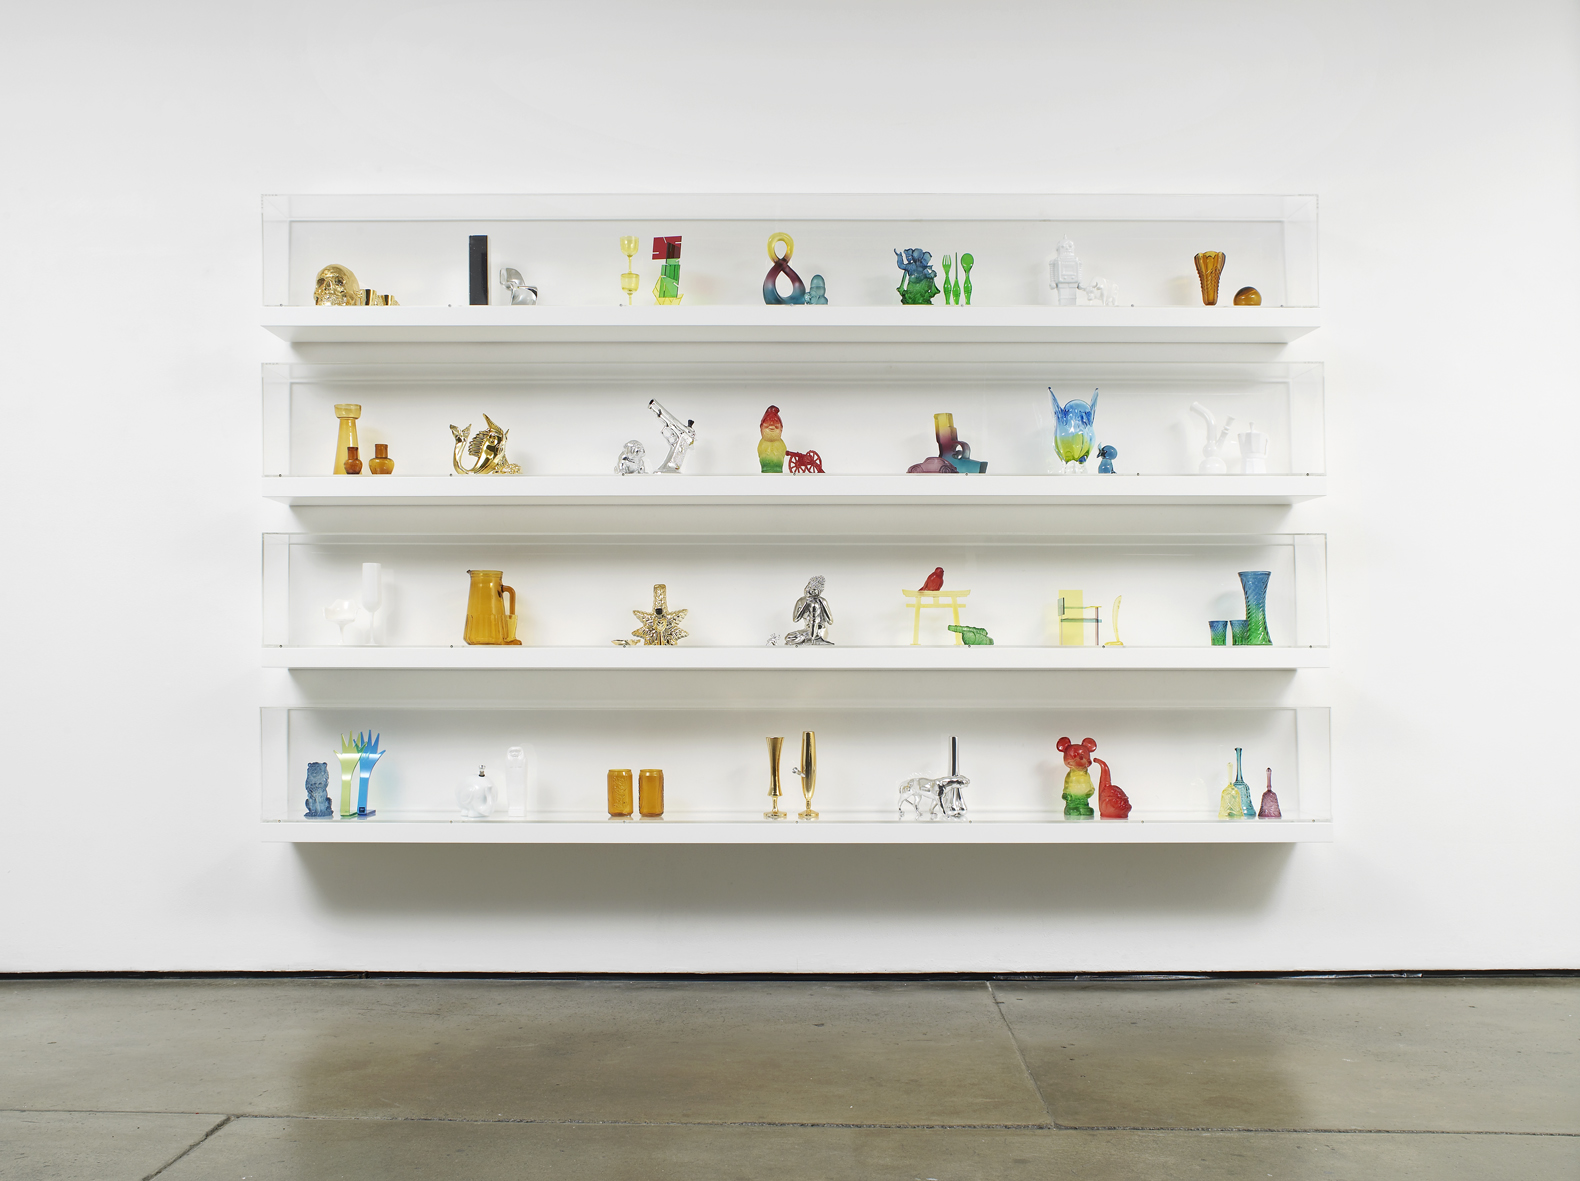 Untitled: Shelves No. 1 (series 5)  2012 Mixed media, shelves, perspex casing 160 x 280  x 24 cm / 63 x 110.2 x 9.4 in